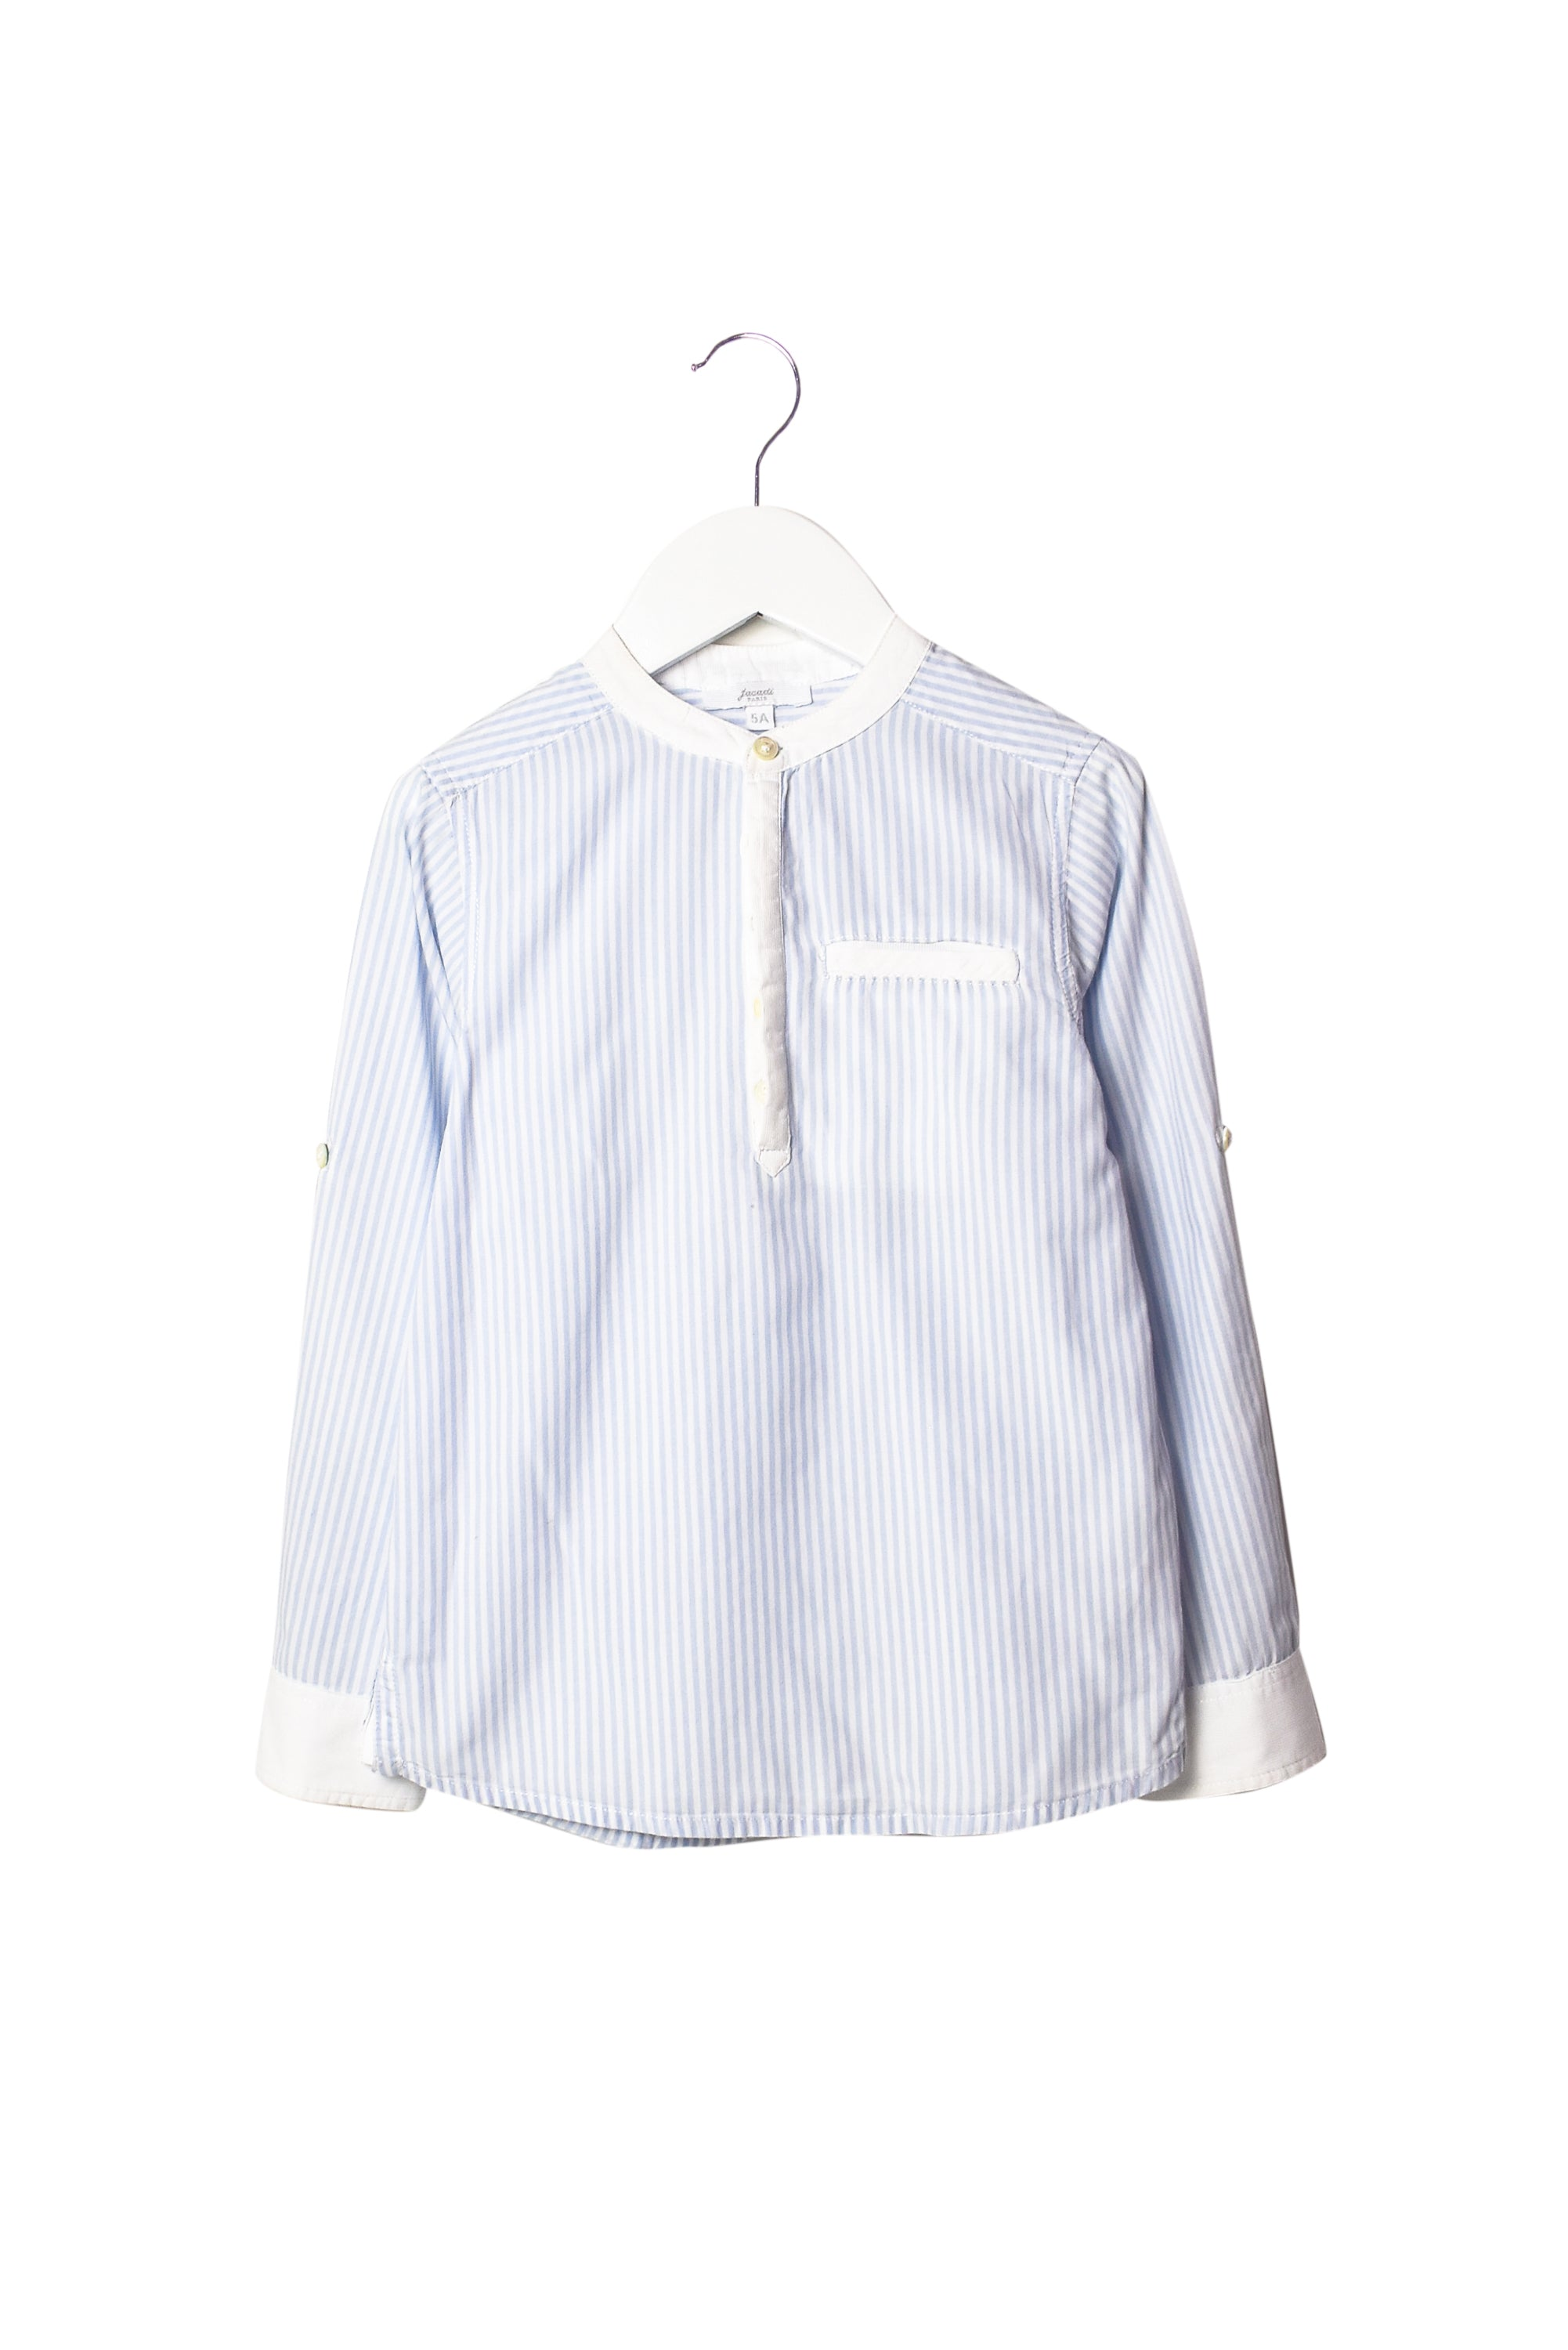 10006454 Jacadi Kids~Shirt 5T at Retykle